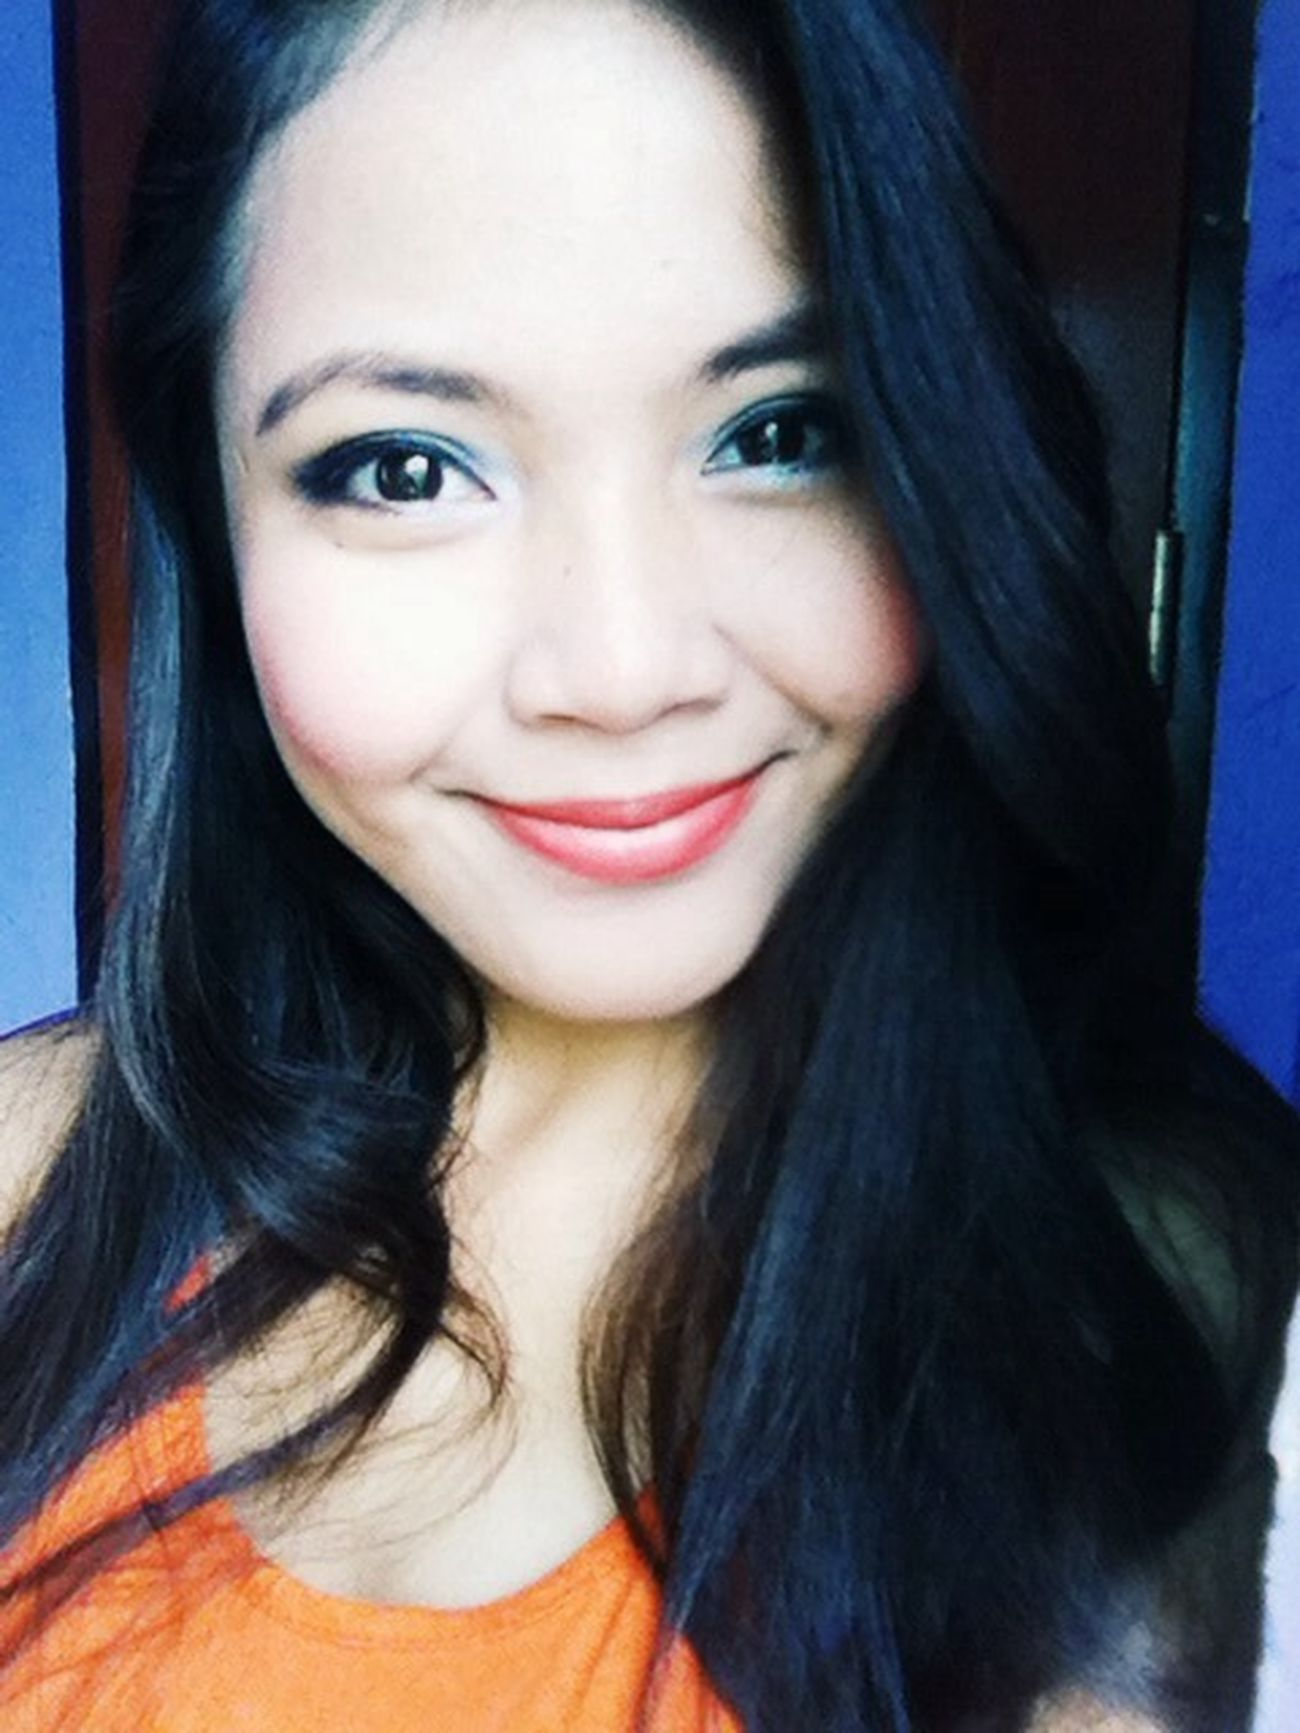 When youtube taught you how to wear make-up. Haha! Sorrynotsorry Selfie Smokeyeye :)